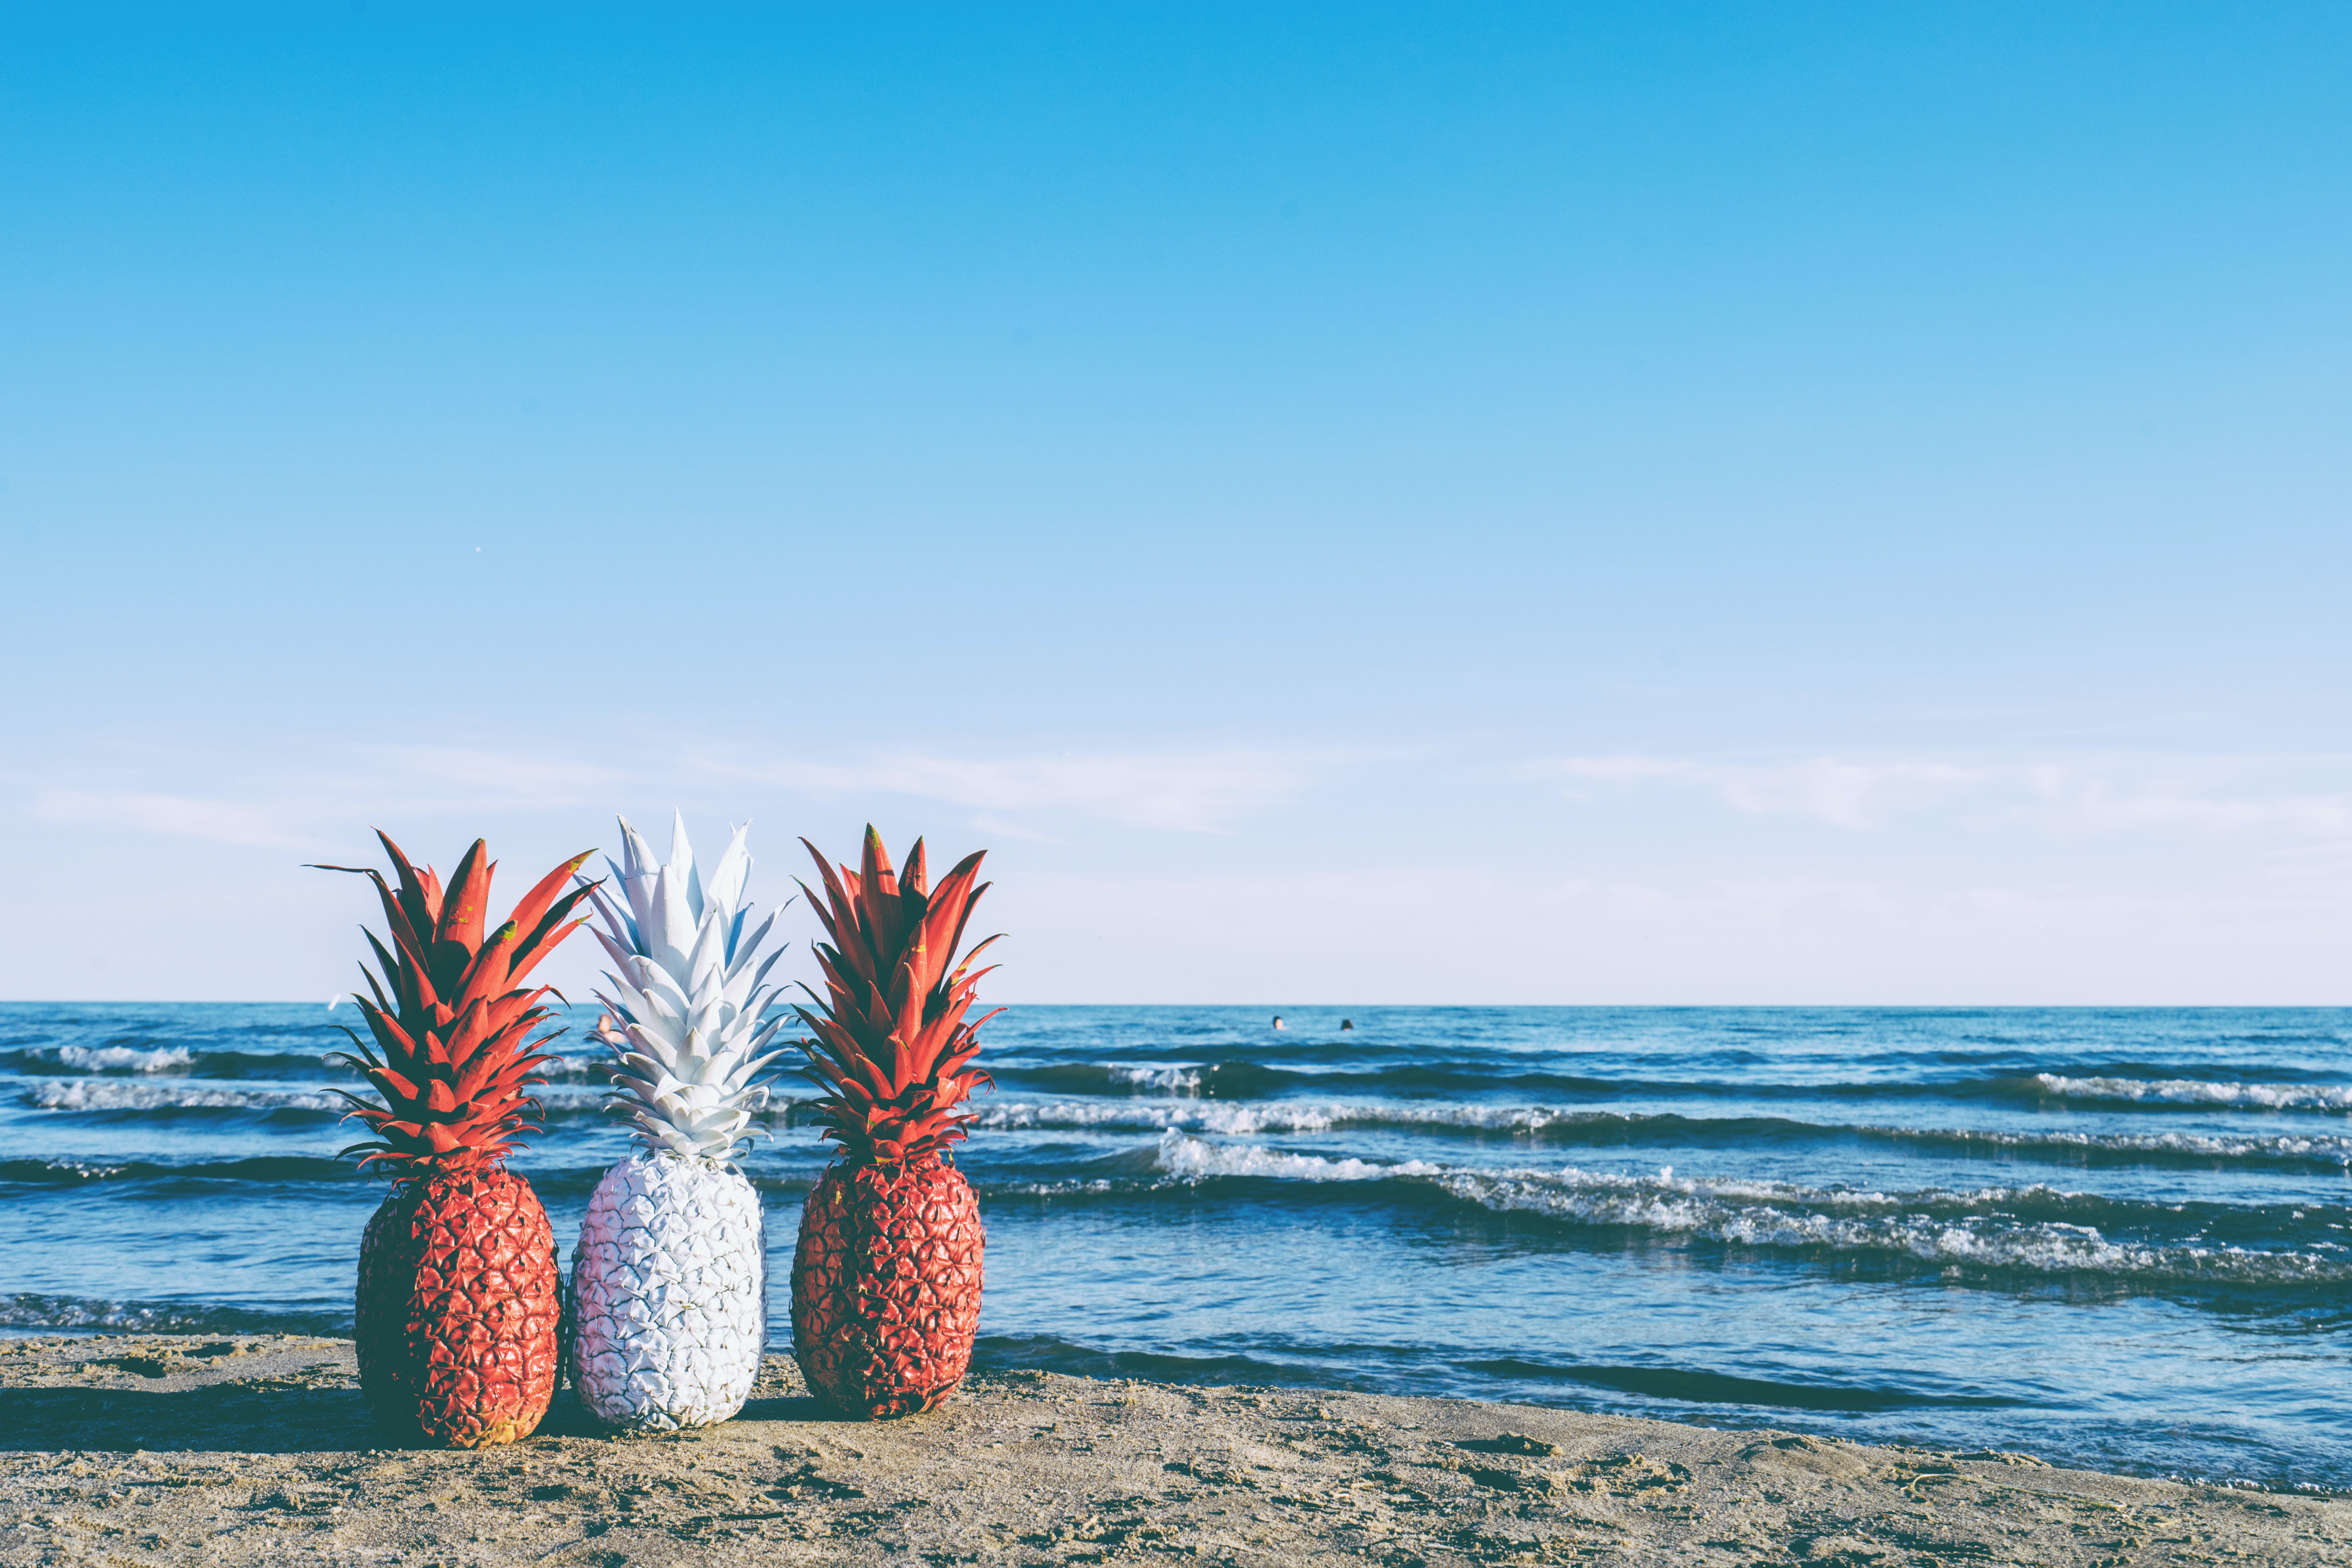 White and Two Red Painted Pineapples Near on Seashore